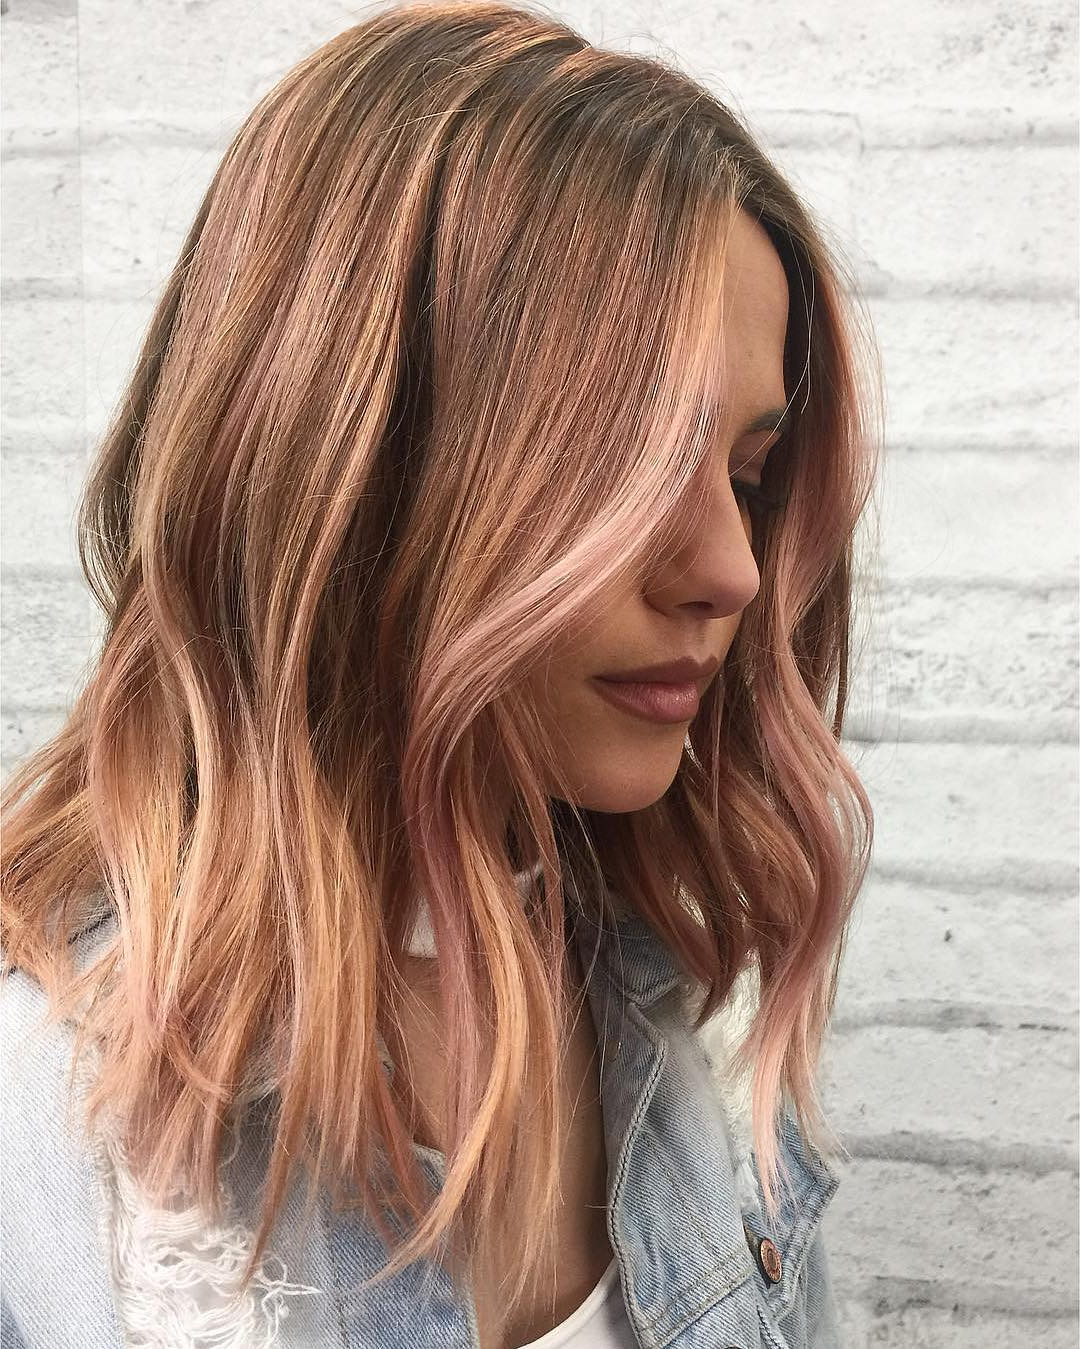 10 Wavy Shoulder Length Hairstyles 2019 Inside Popular Pink Medium Hairstyles (View 4 of 20)